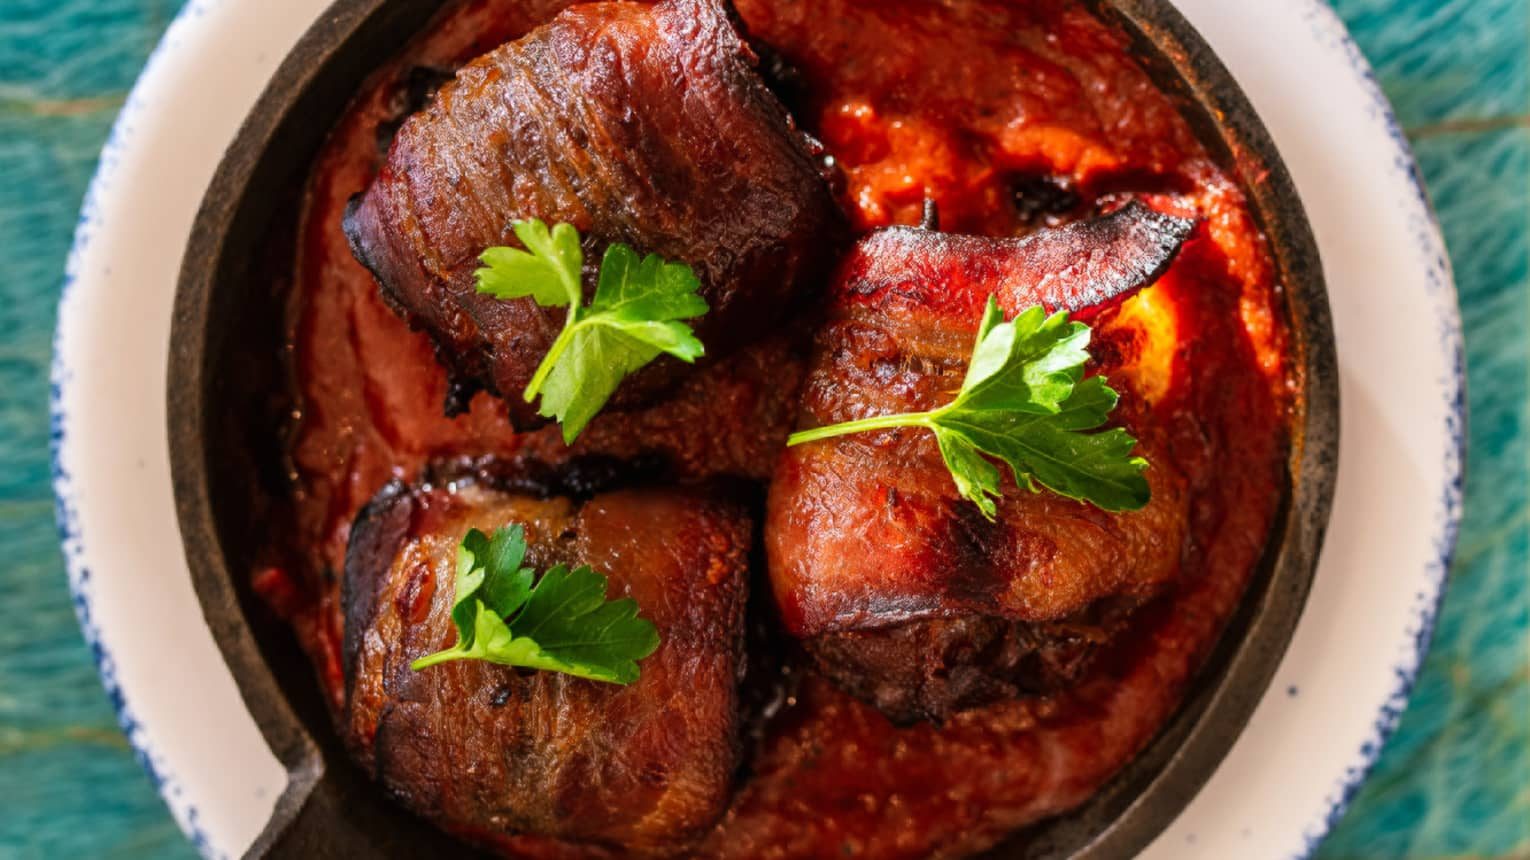 Skillet of bacon-wrapped, stuffed dates with chorizo and aji panca sauce, topped with parsley